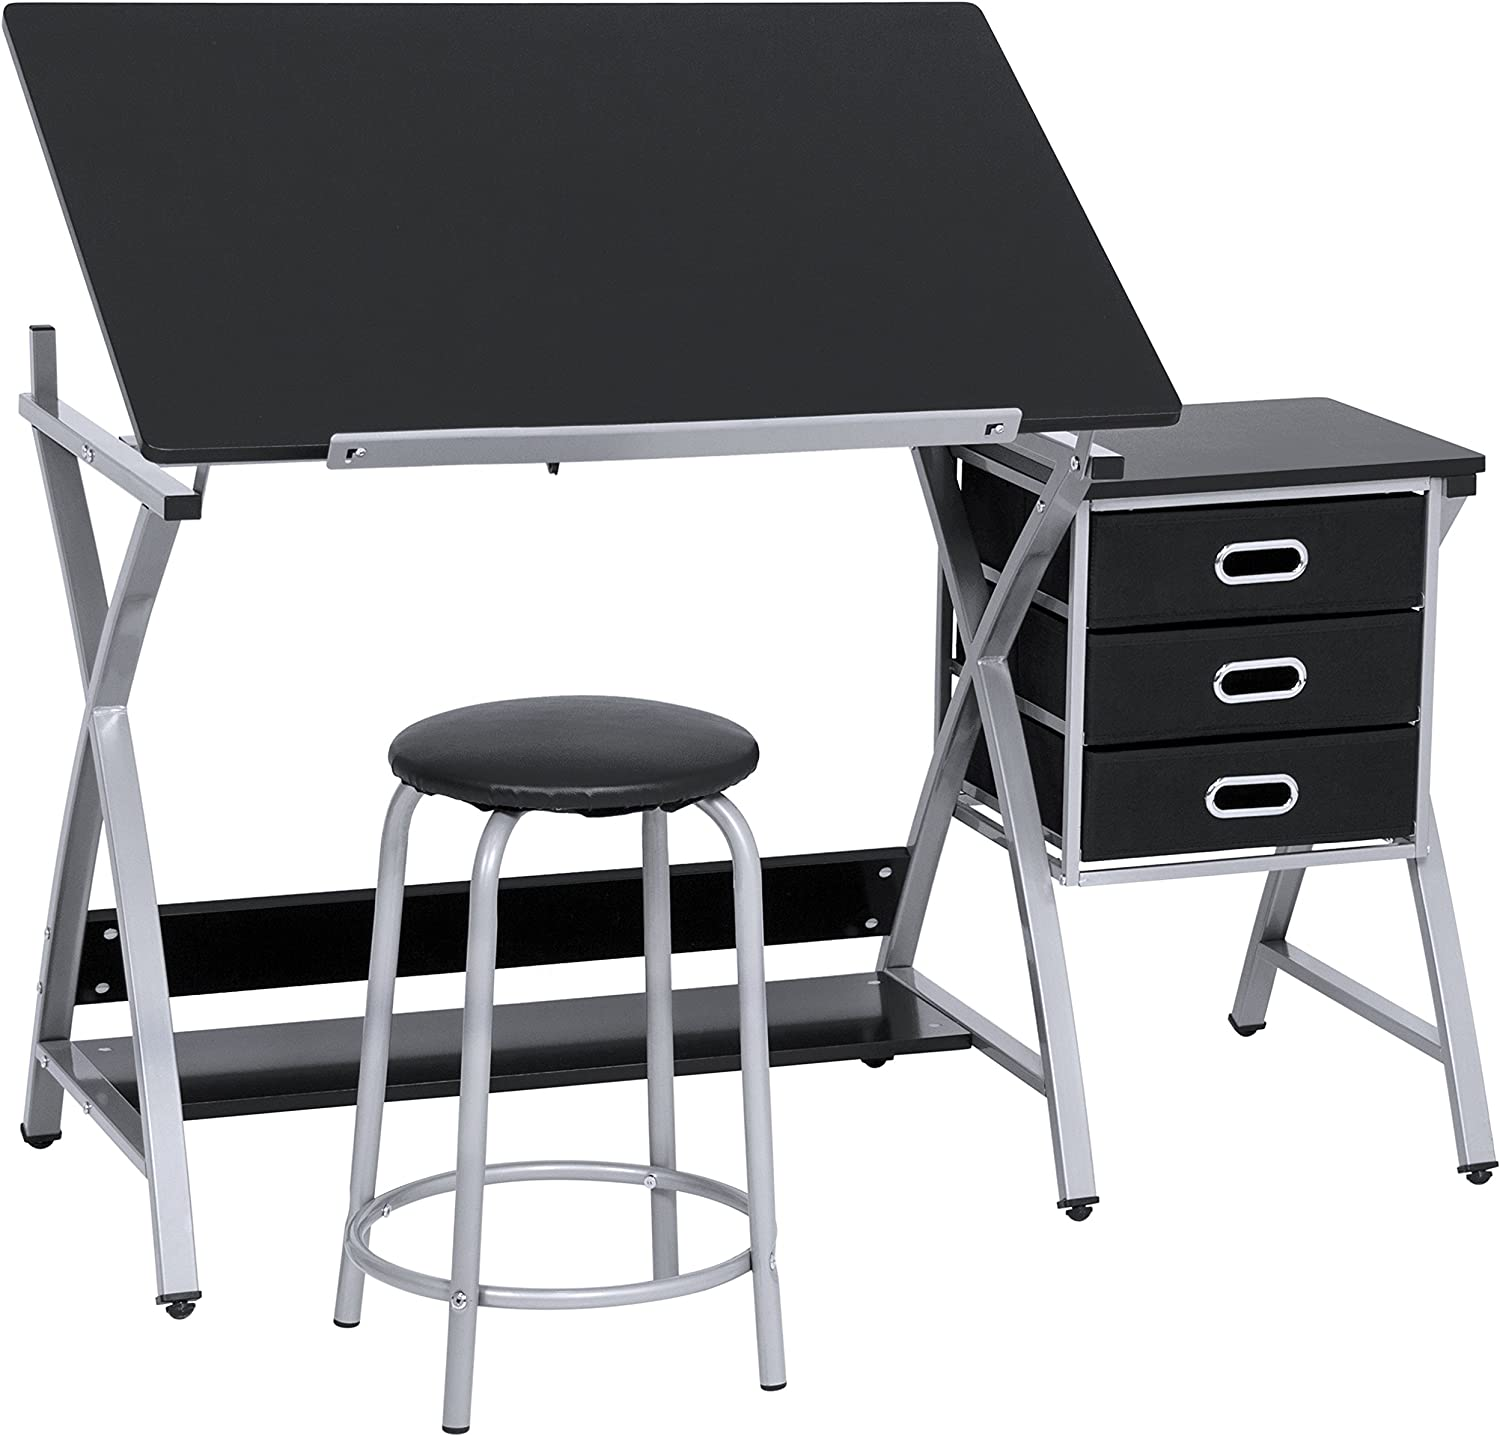 Best Choice Products 40% OFF Cheap Sale Adjustable Office Drawing Statio Bombing free shipping Desk Board